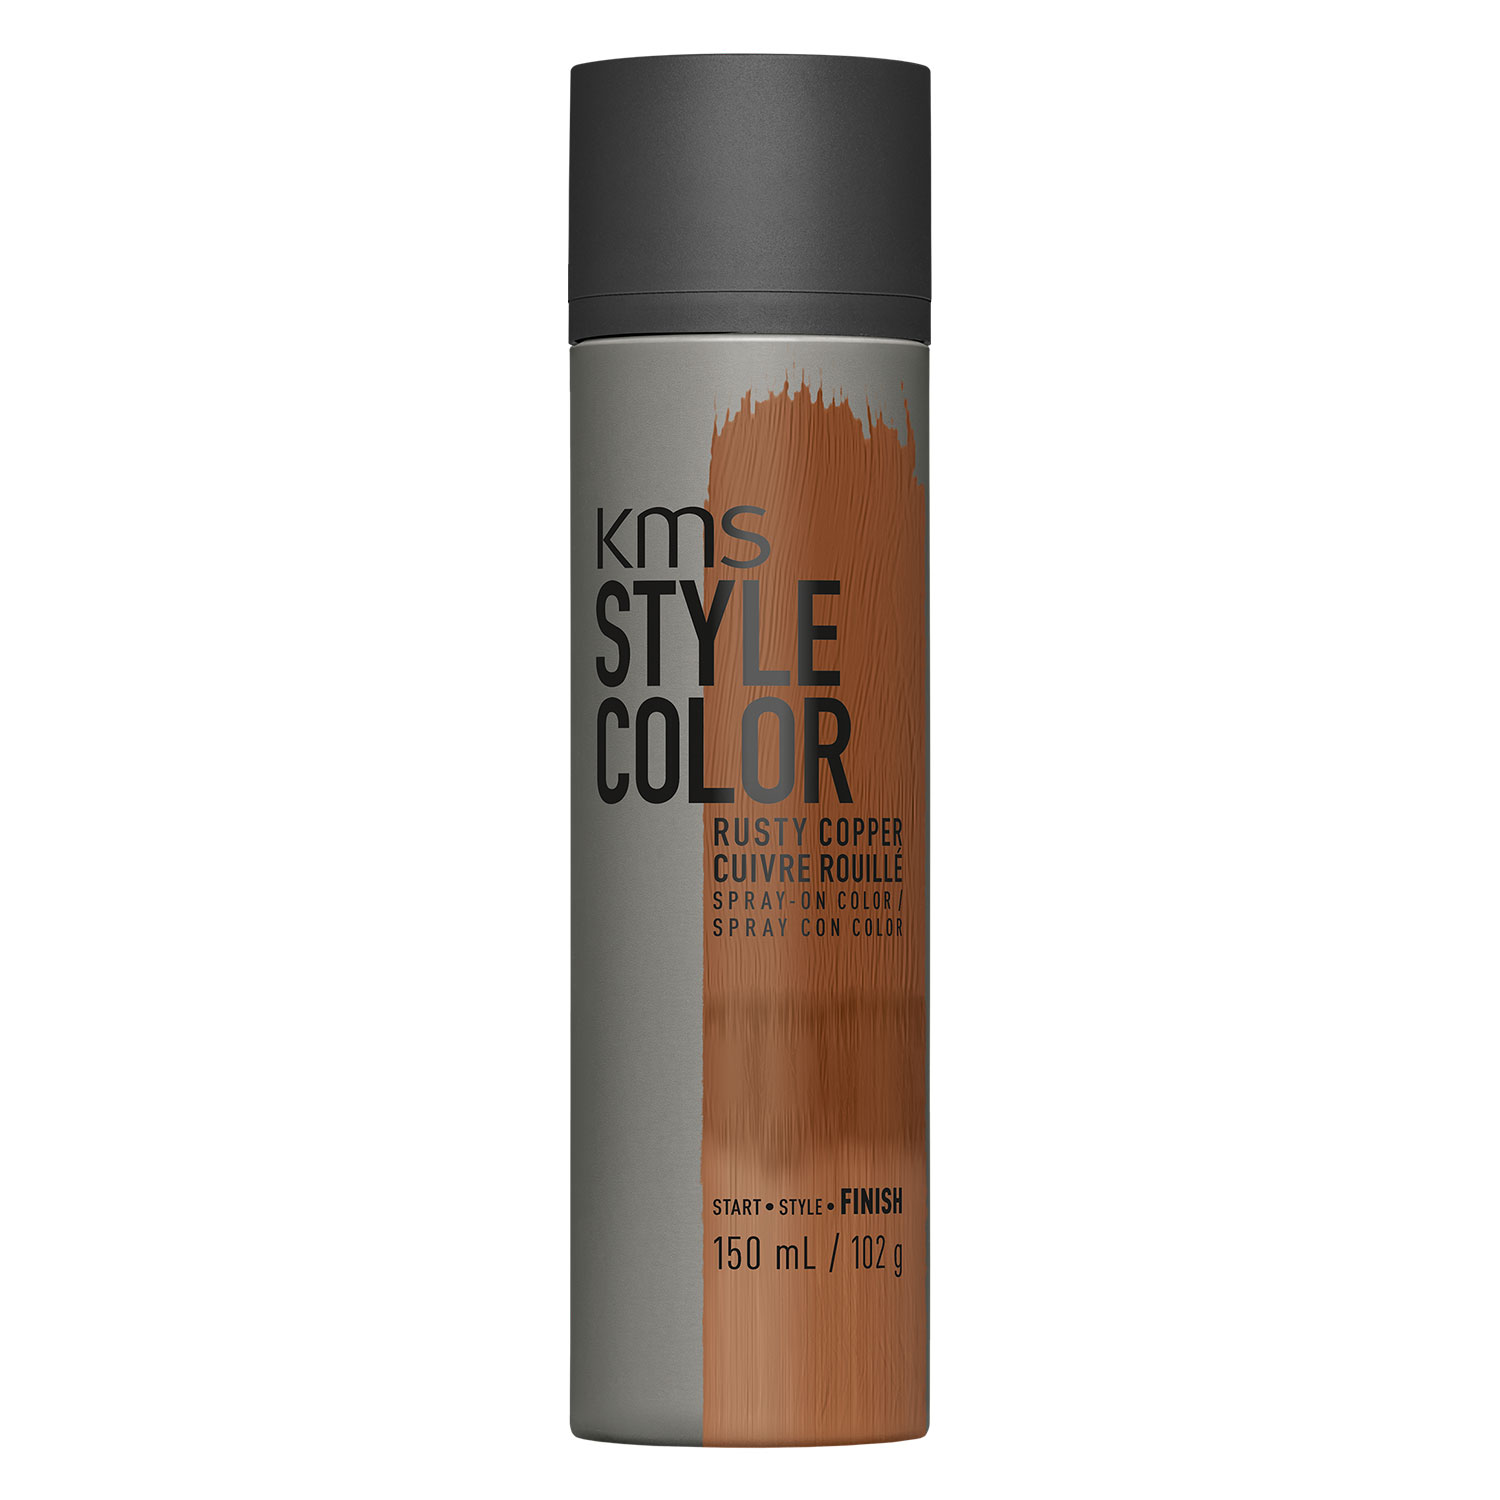 Stylecolor - Rusty Copper